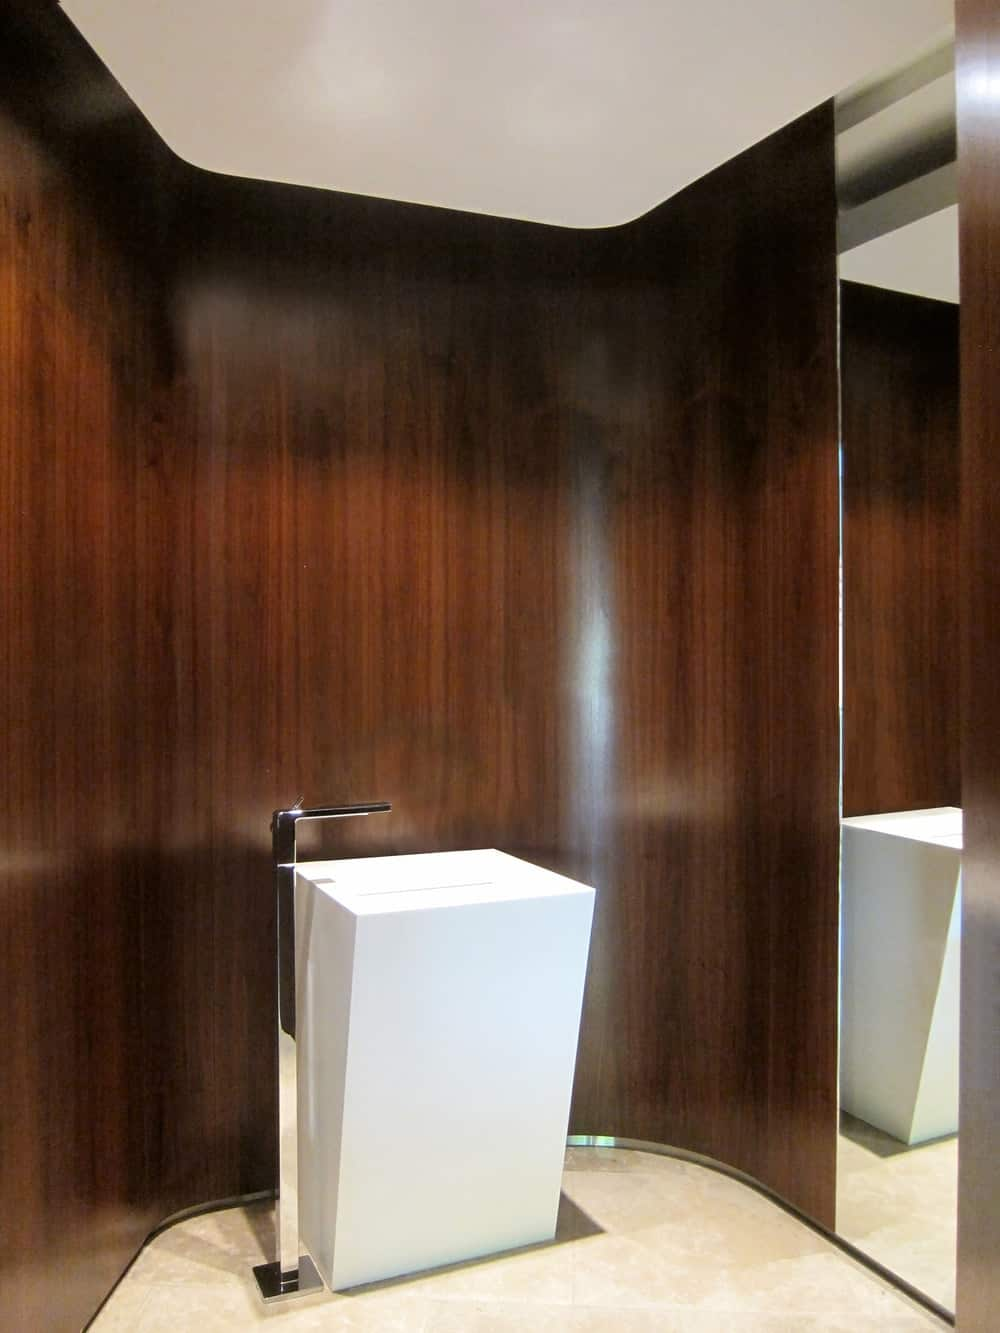 Bathroom in the Lake House designed by ARRCC.